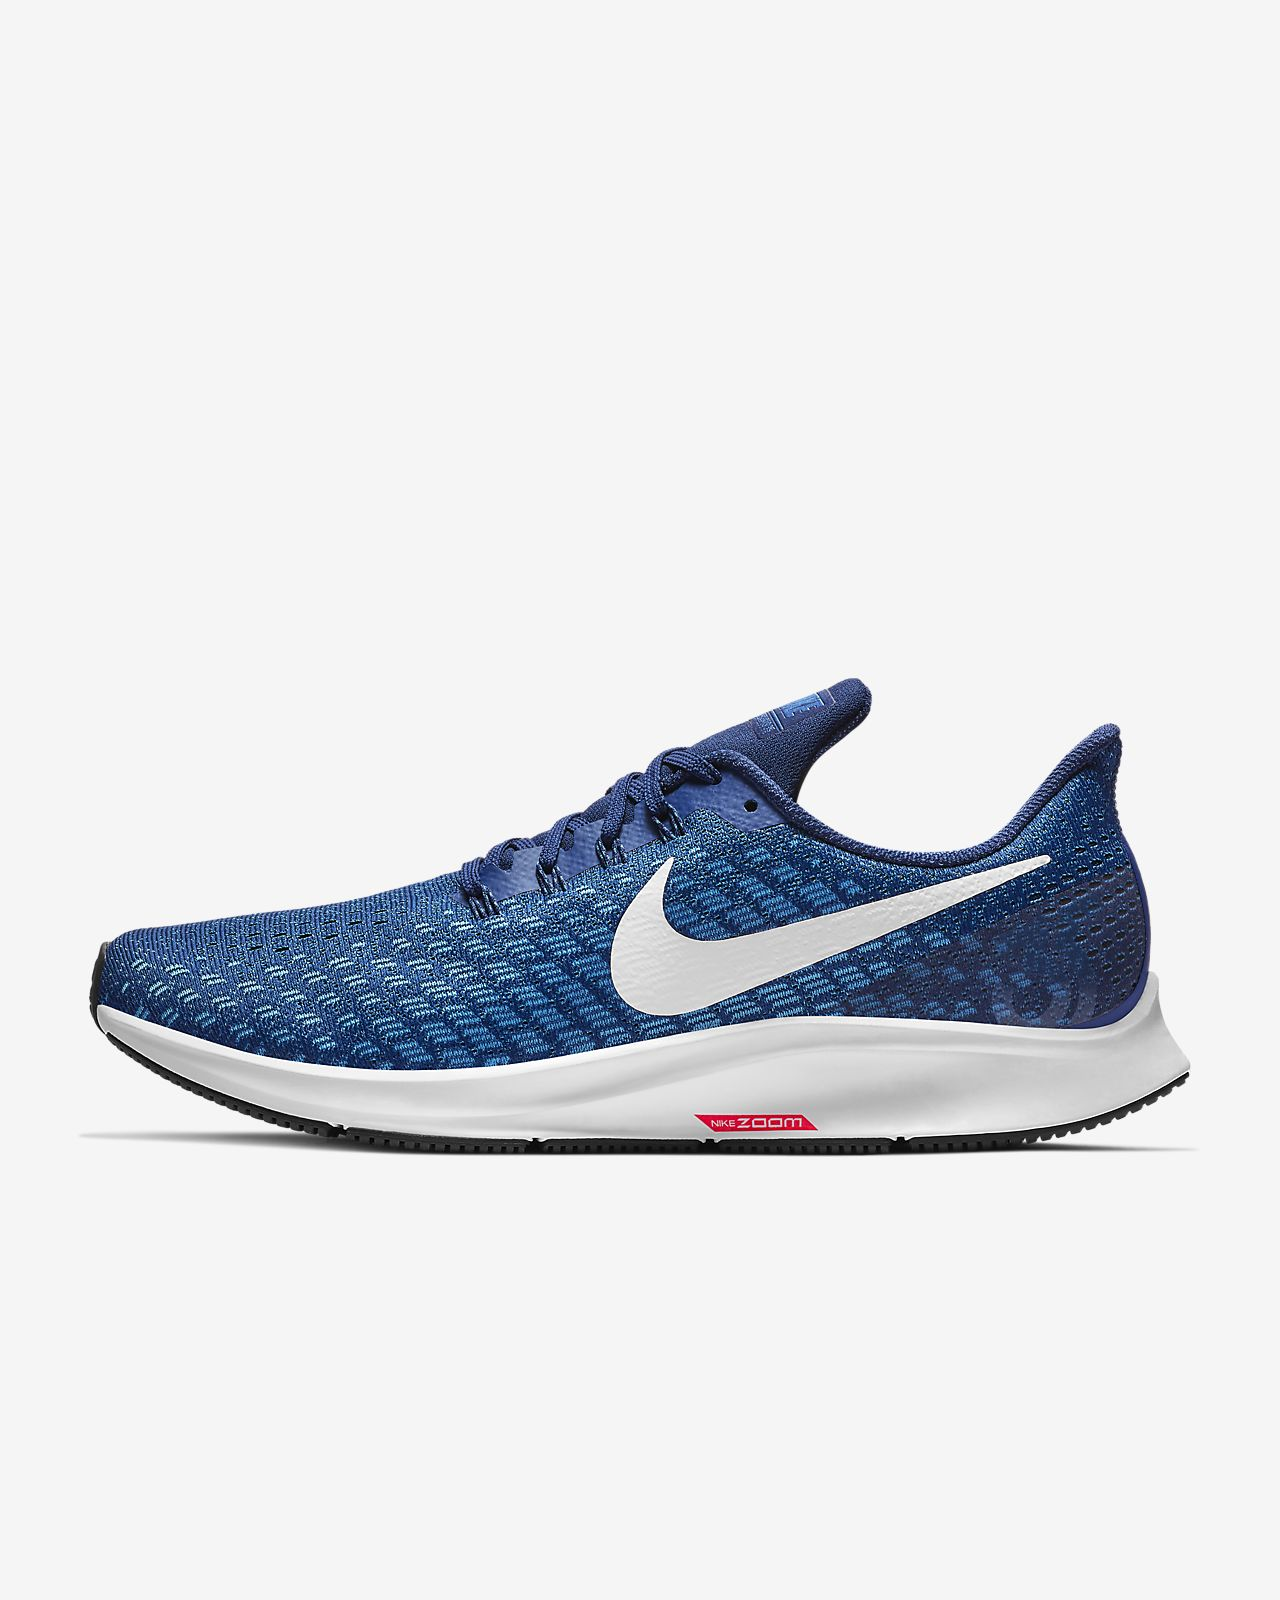 c94a251744f0 Nike Air Zoom Pegasus 35 Men s Running Shoe. Nike.com MY